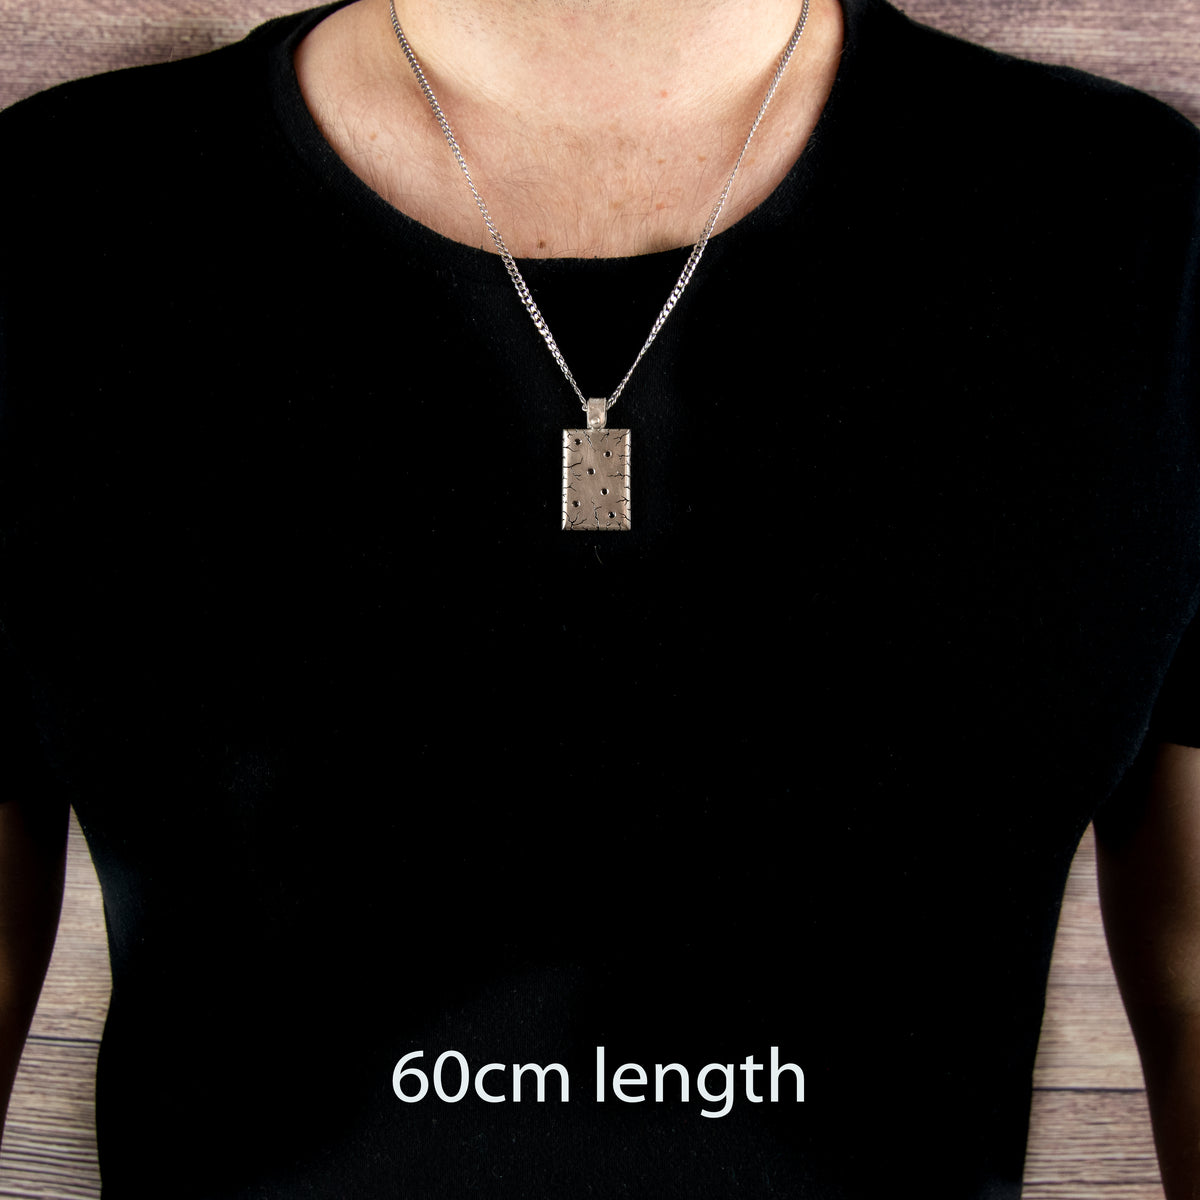 Silver, heavy pendant with hand engraving and black diamonds. On 60cm chain on persons chest